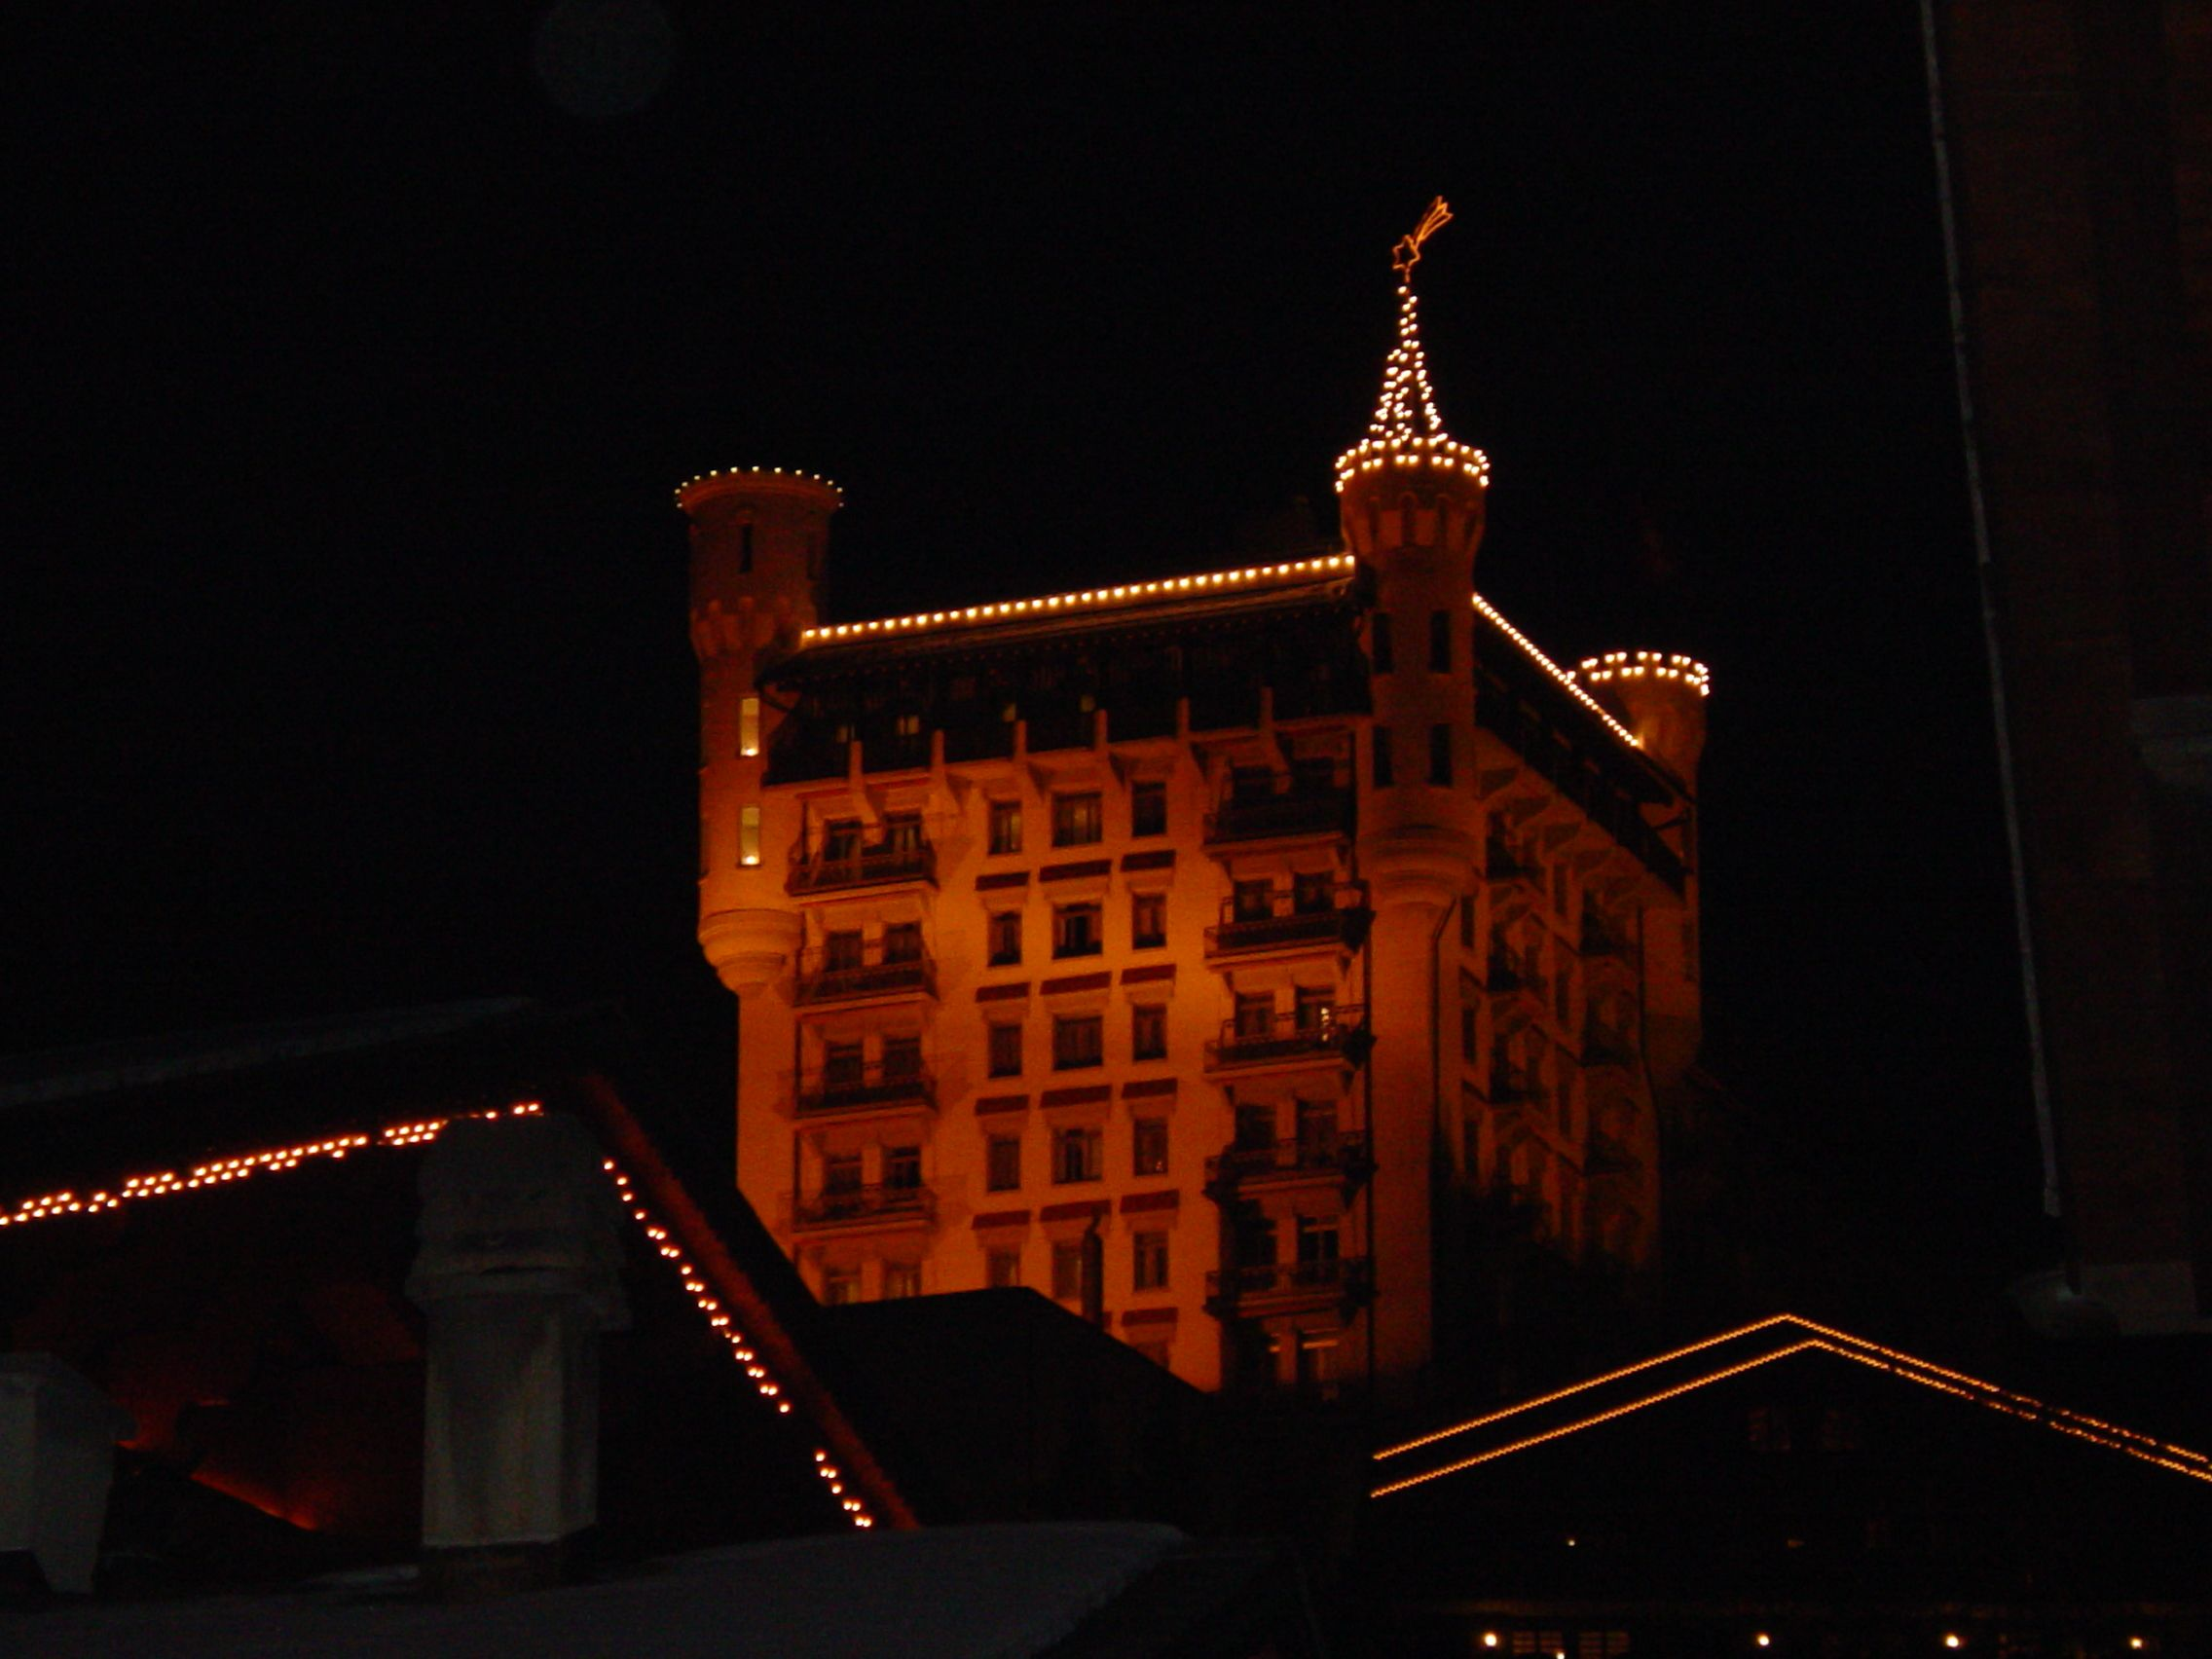 Gstaad Place at night time!